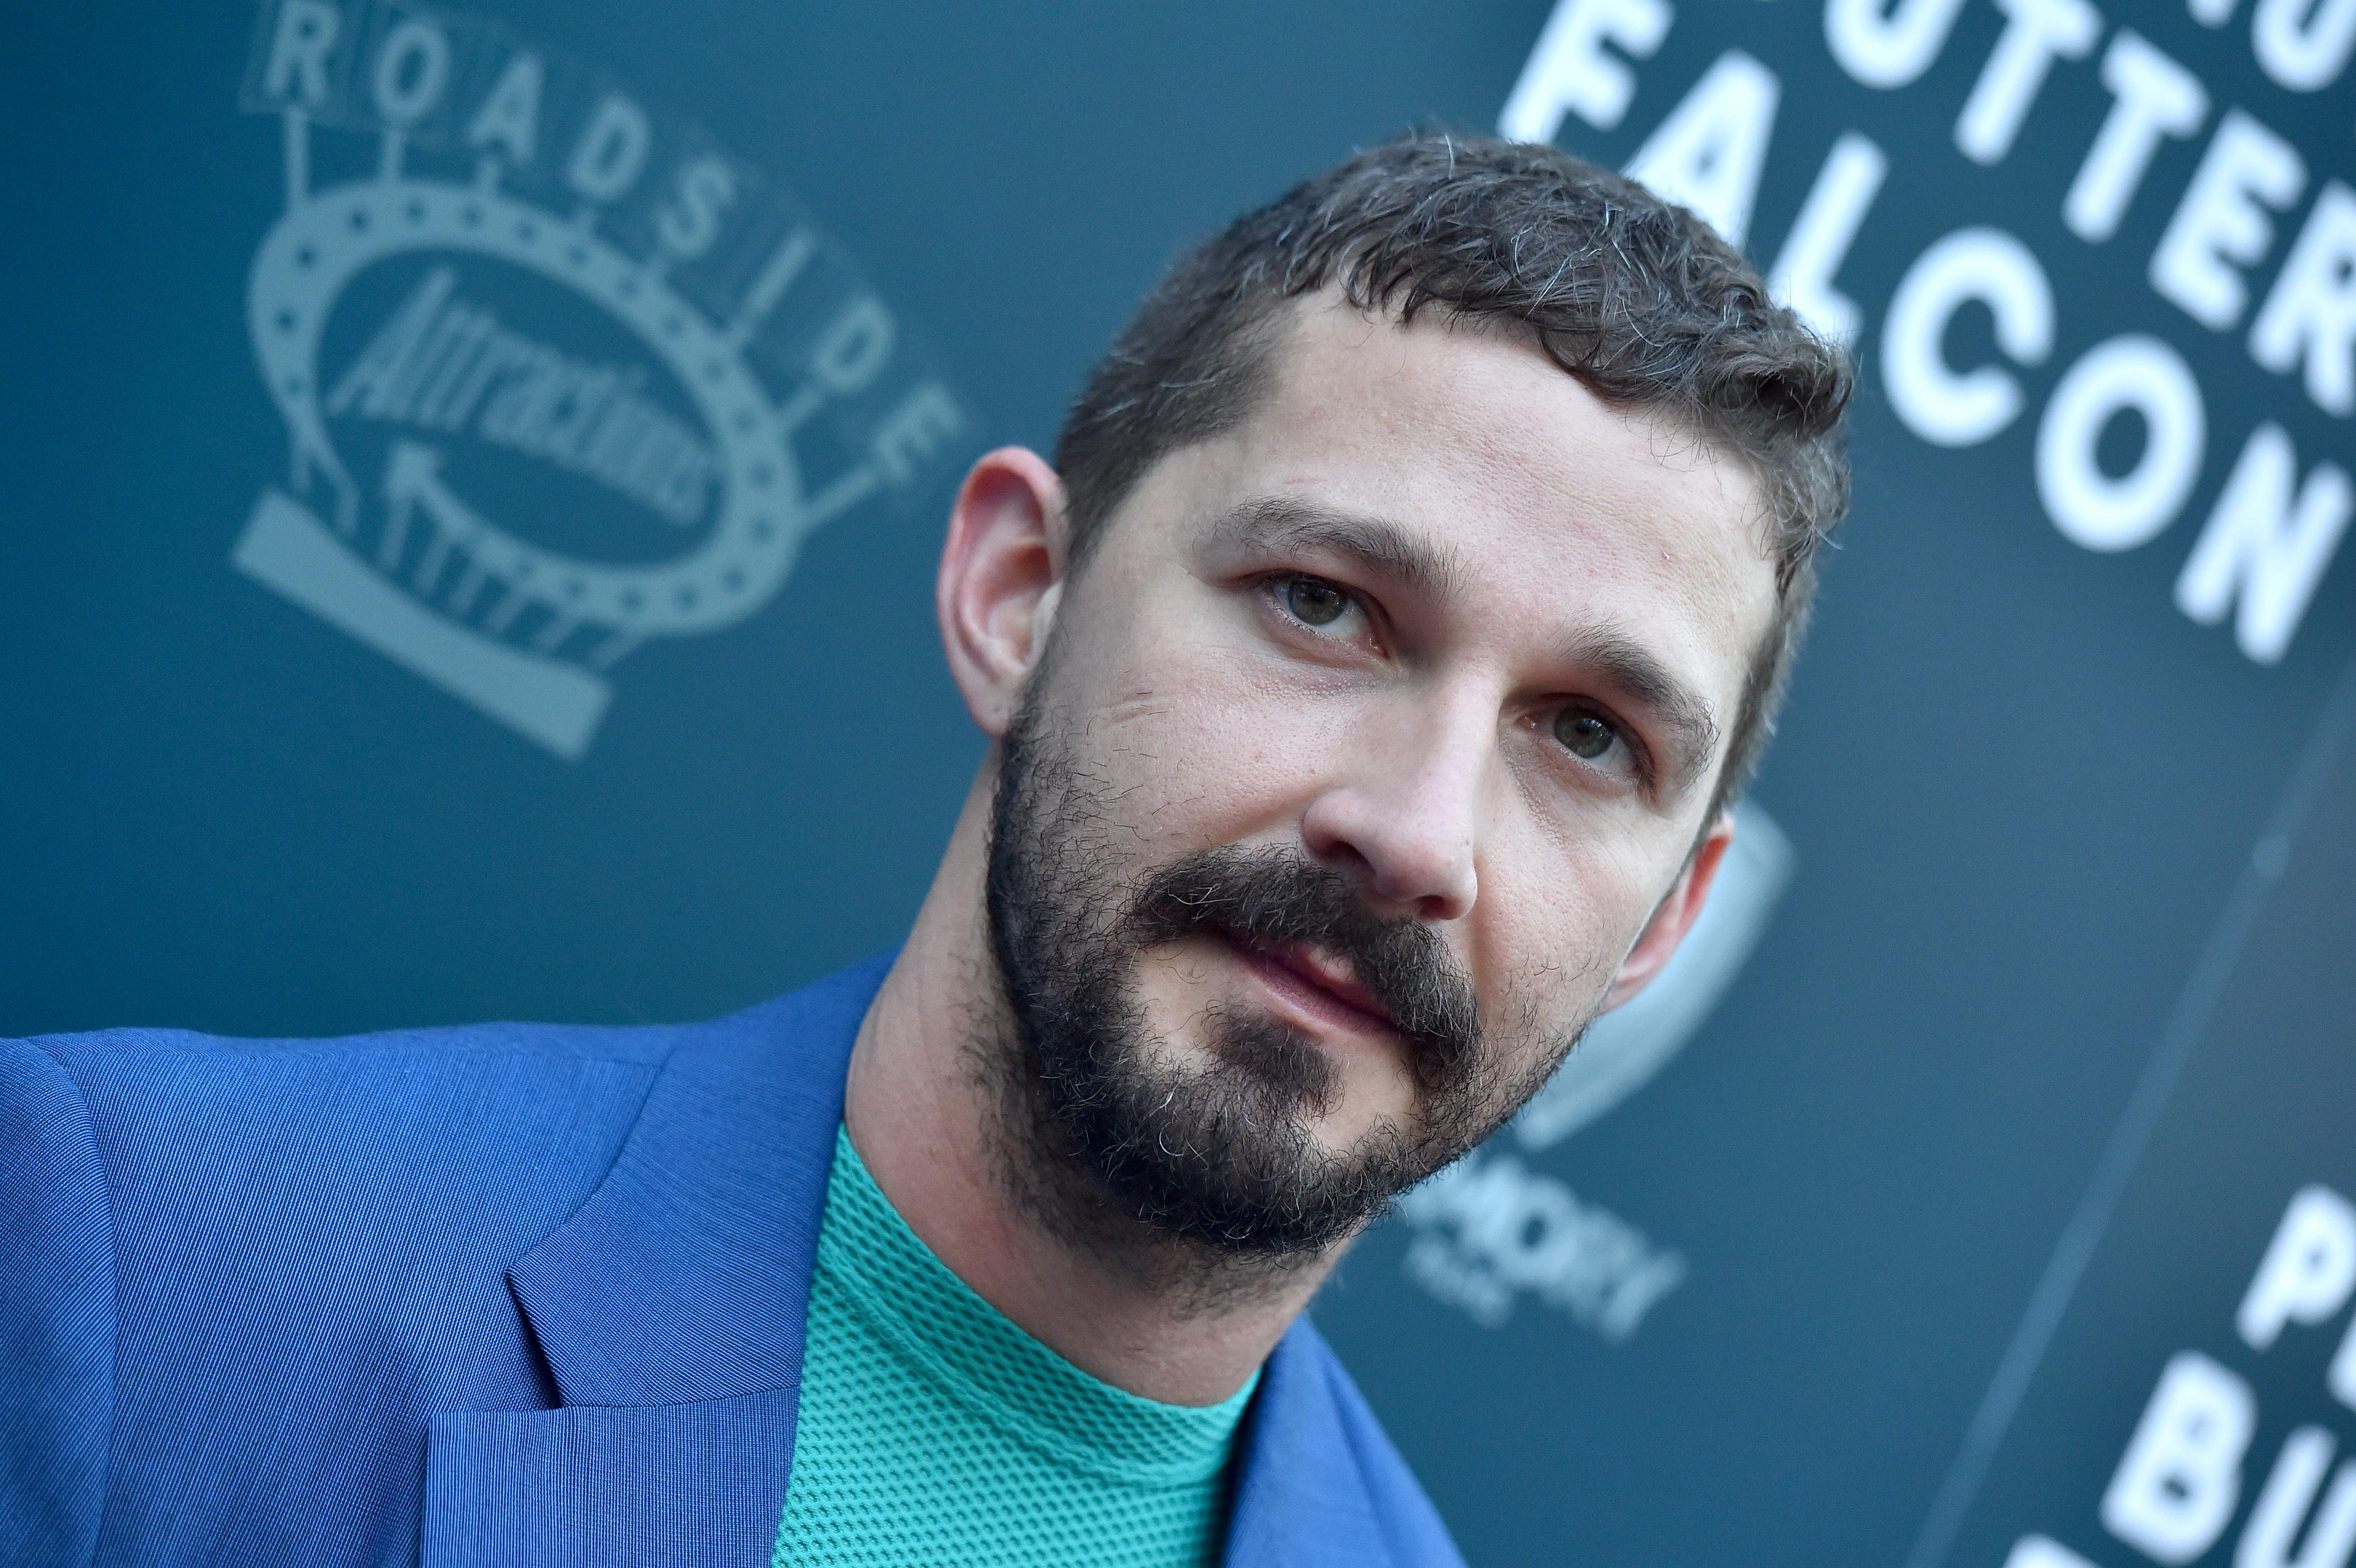 Fox News's Jesse Watters says Shia LaBeouf called him 'trash' in airport lounge run-in